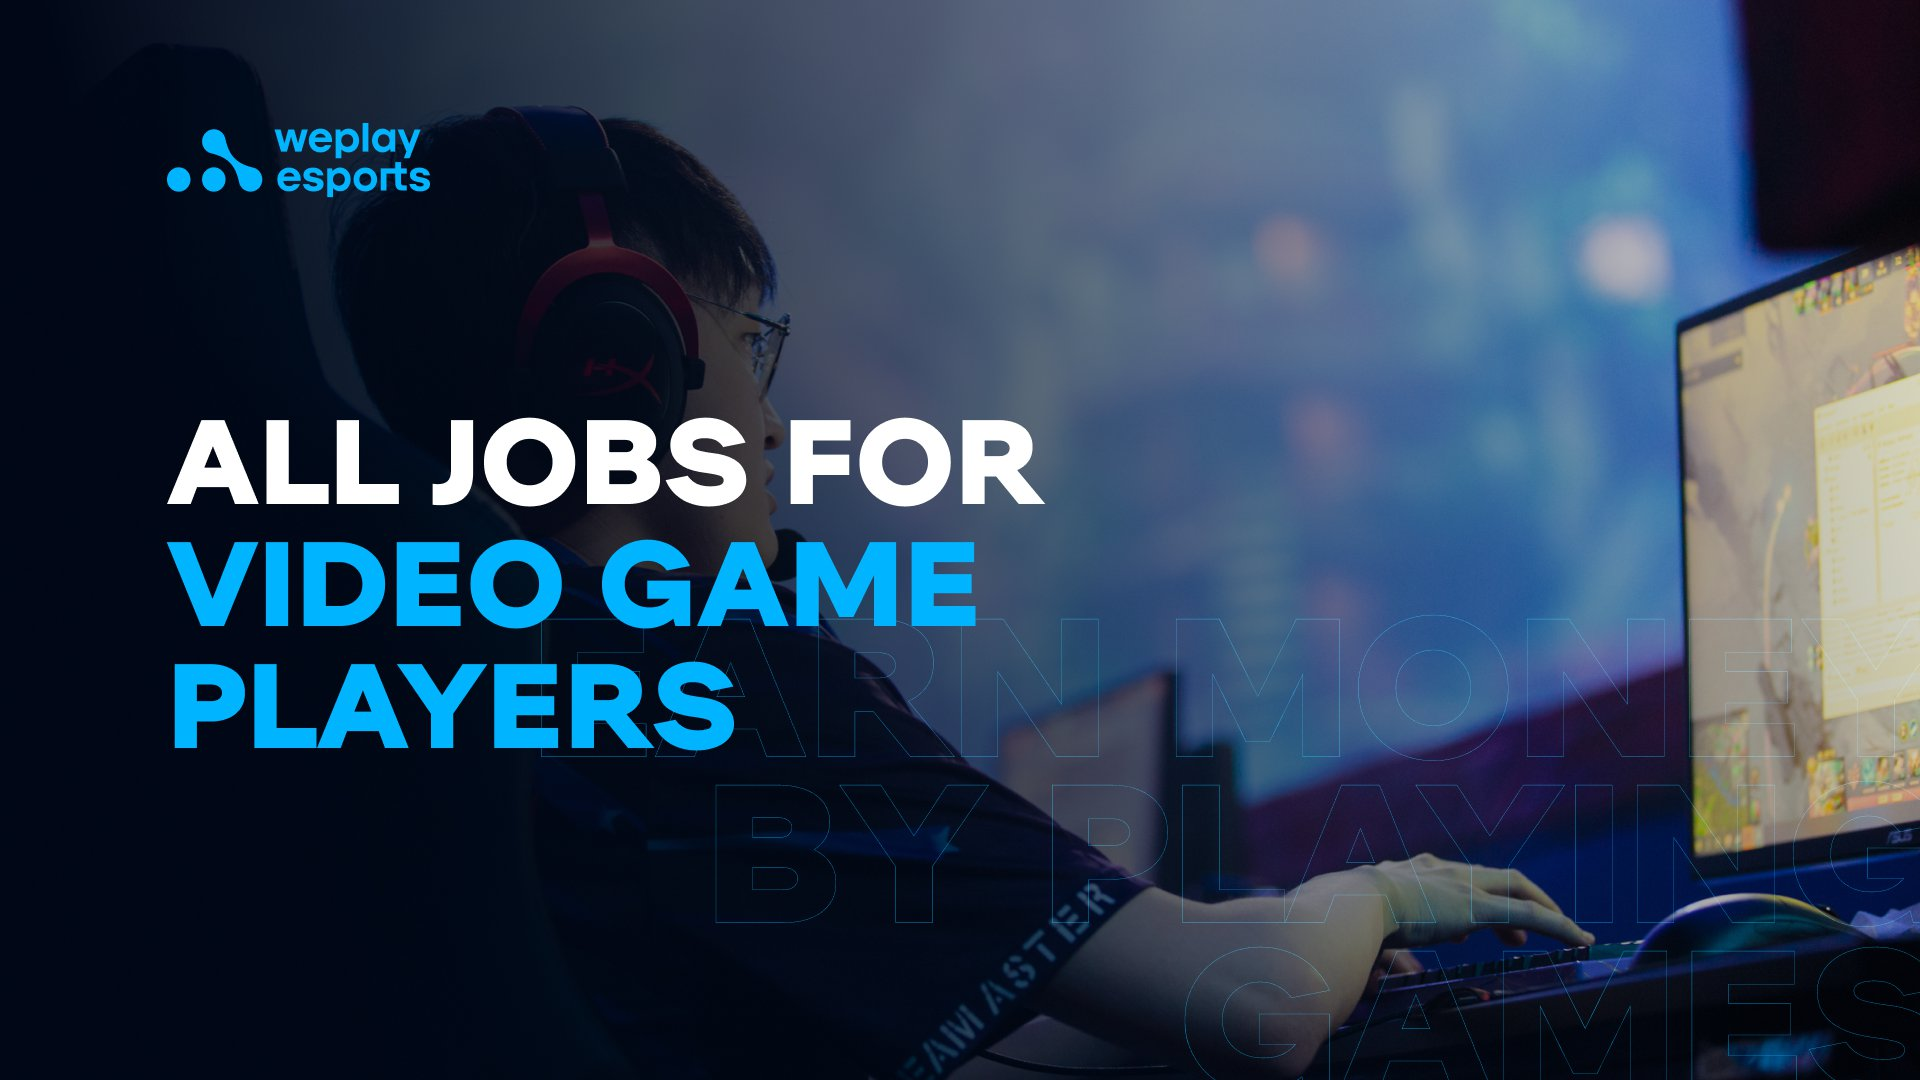 All Jobs for Video Game Players